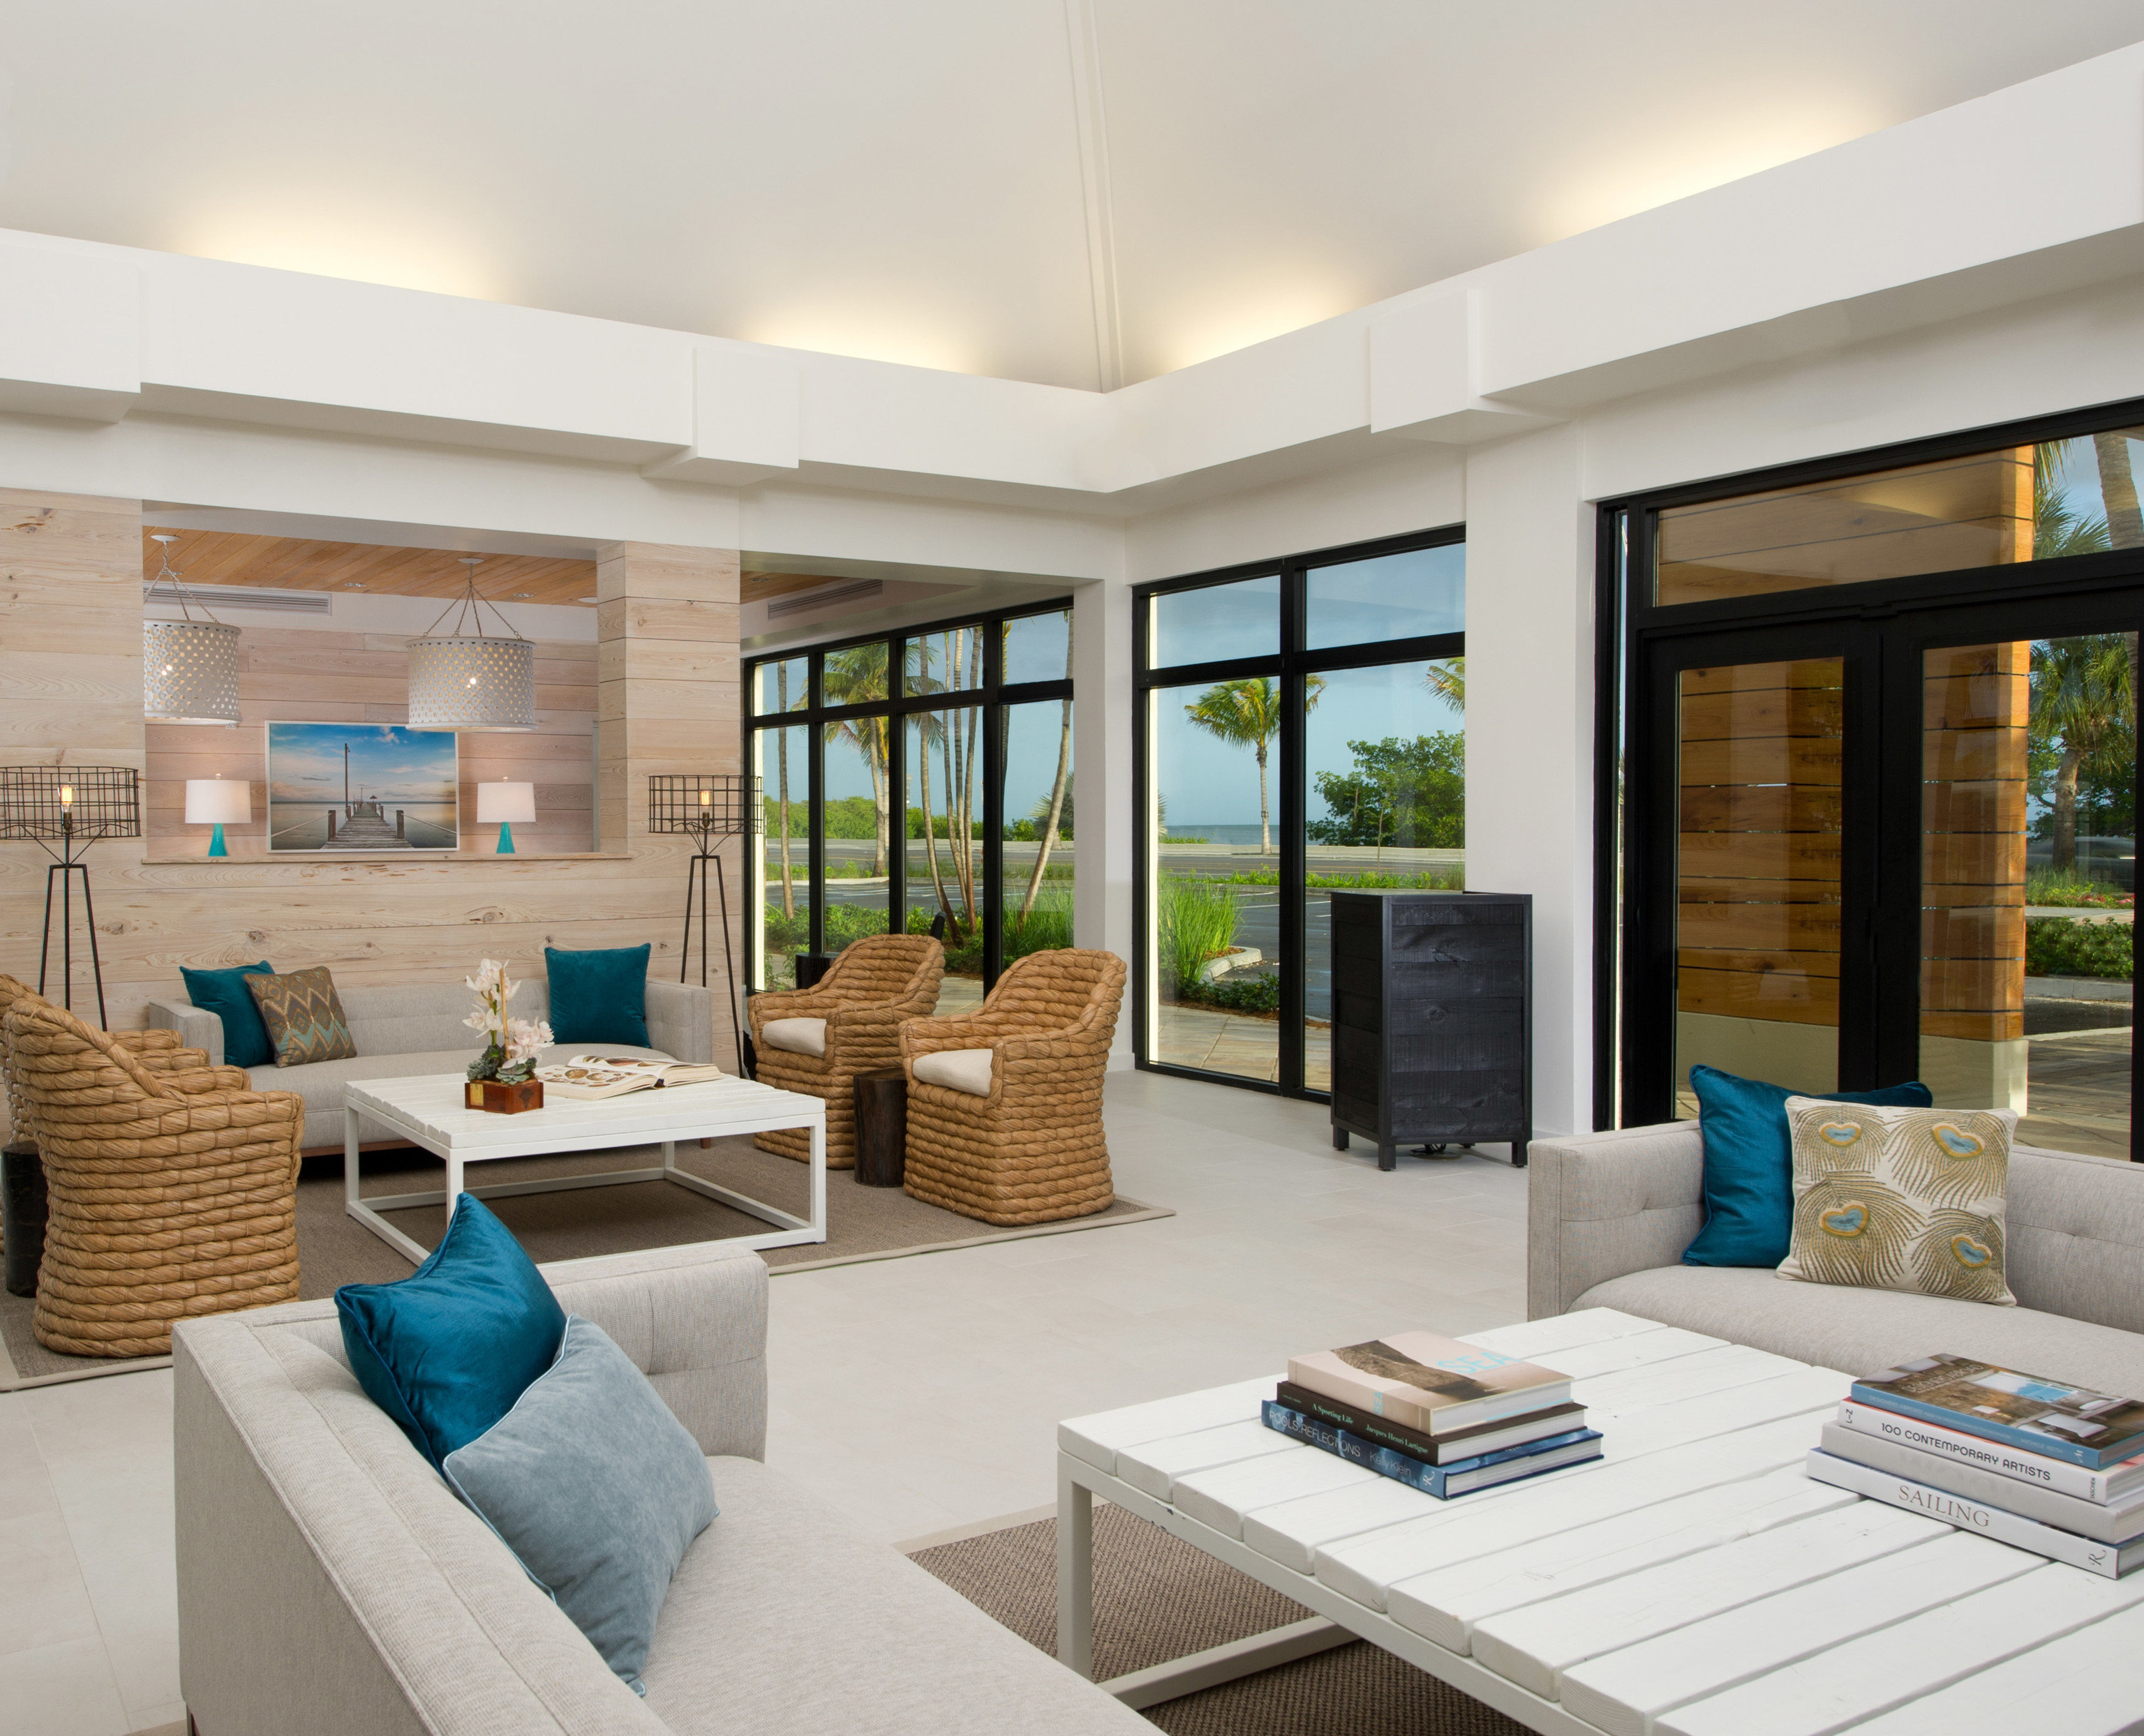 Florida Hotels living room condominium property home house daylighting Villa Suite mansion stone